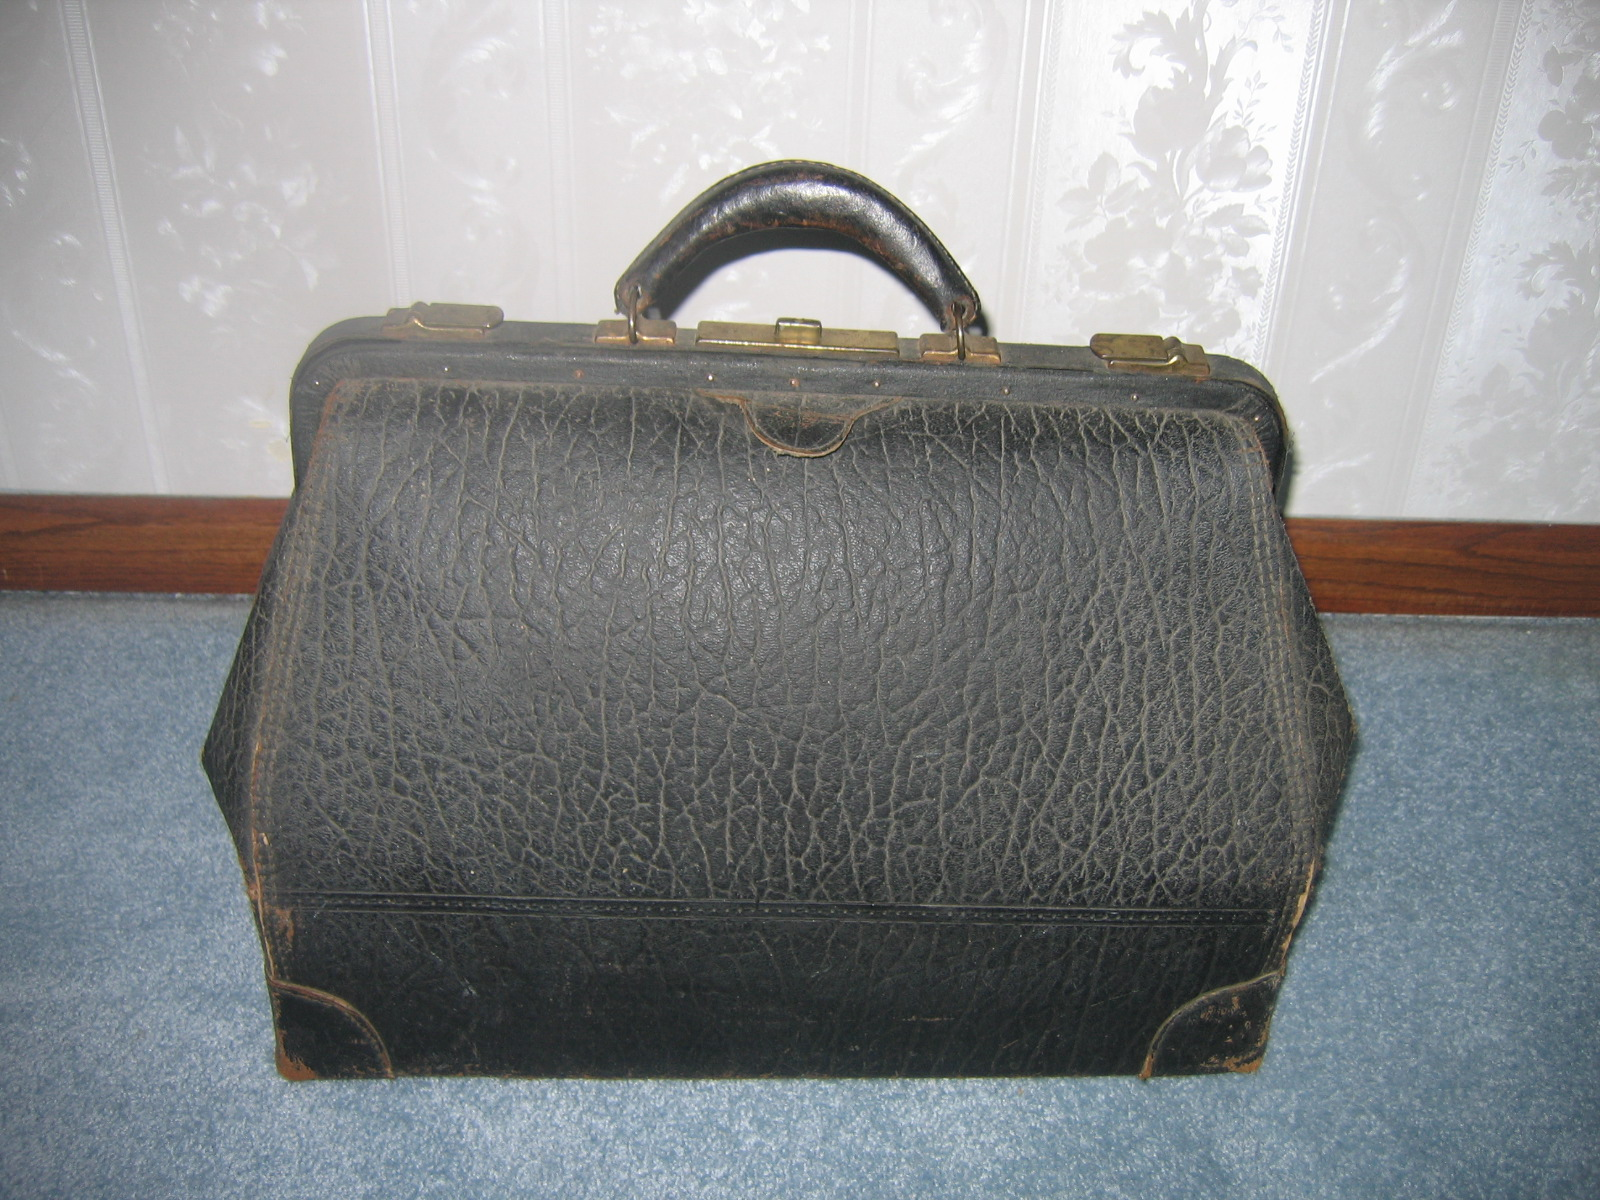 Antique Leather Doctors Bag Is In Good Fair Condition The Cowhide Could Stand Some On Indication Of Maker